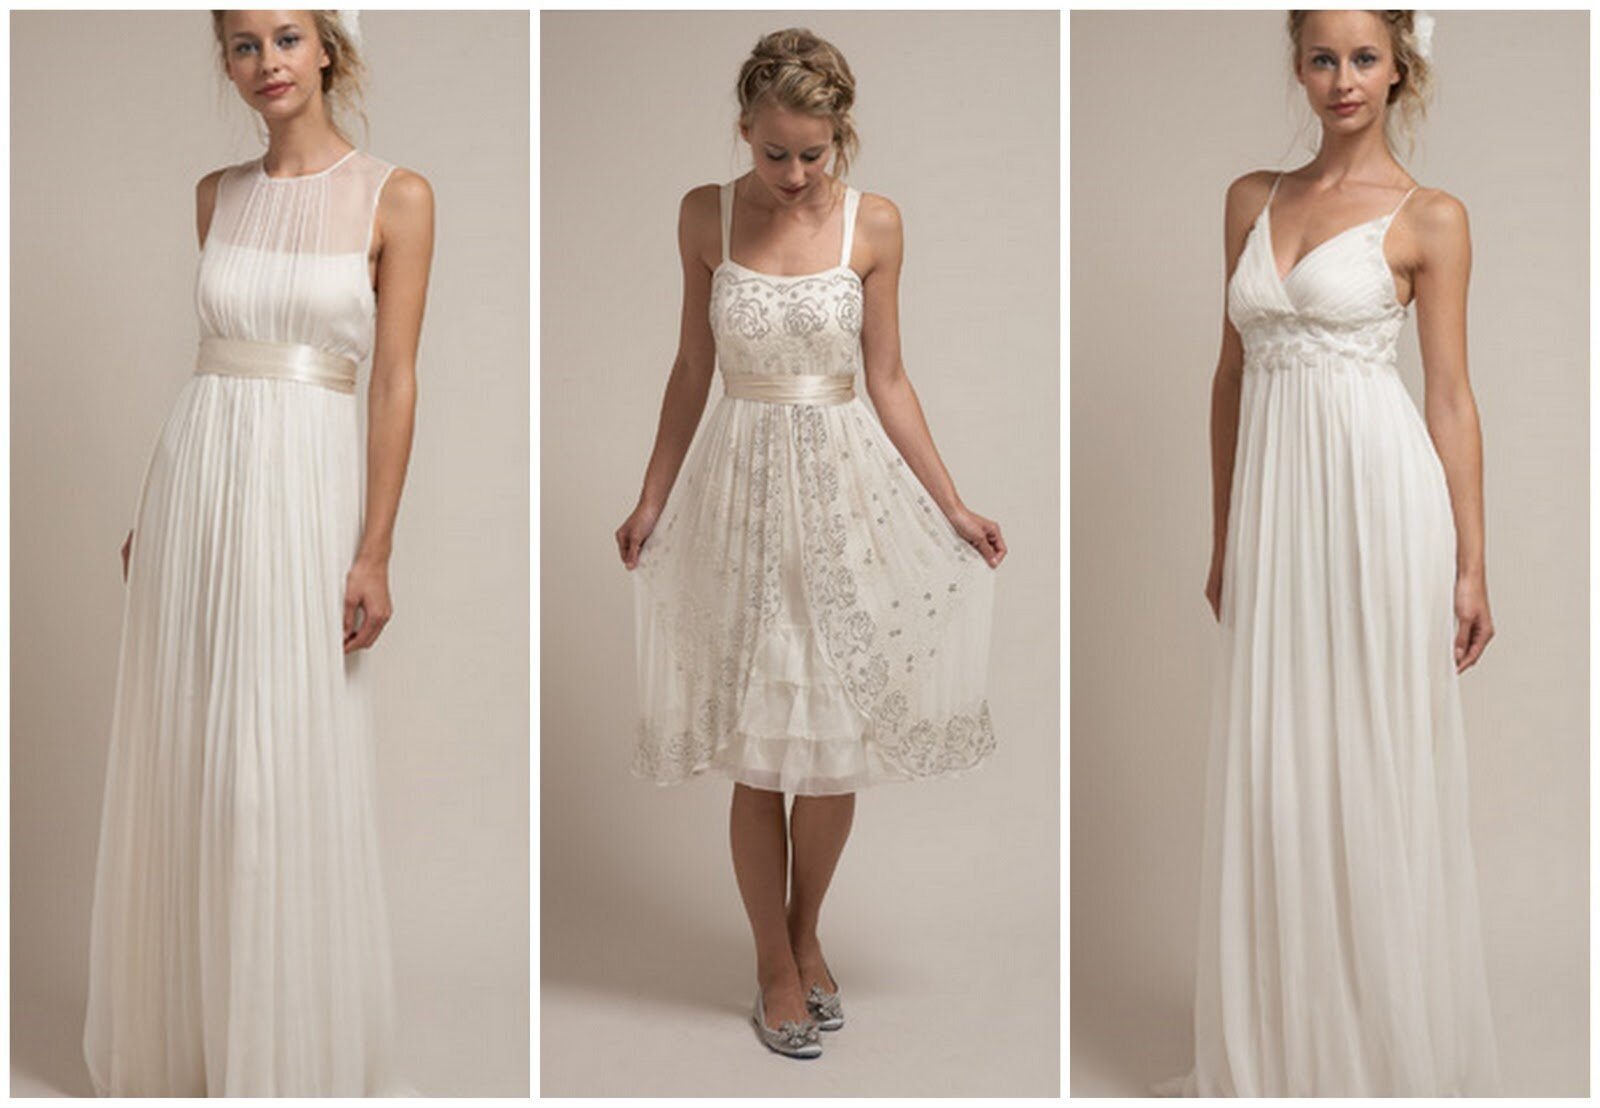 Summer outdoor wedding dresses Photo - 4